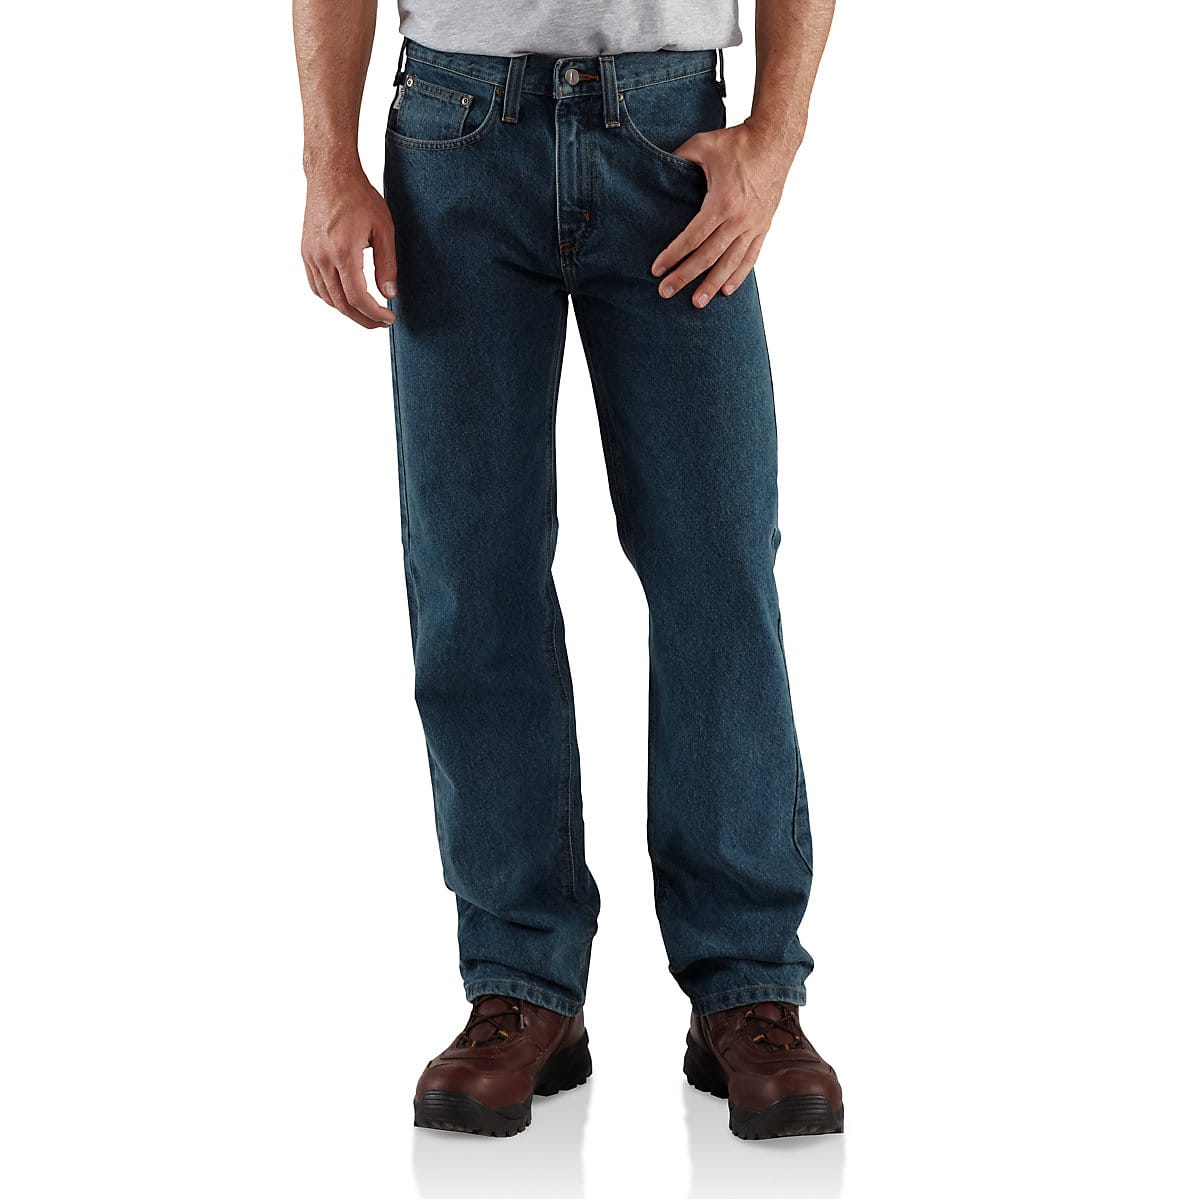 a5941a31e Men's Relaxed-Fit Straight-Leg Jean B460 | Carhartt